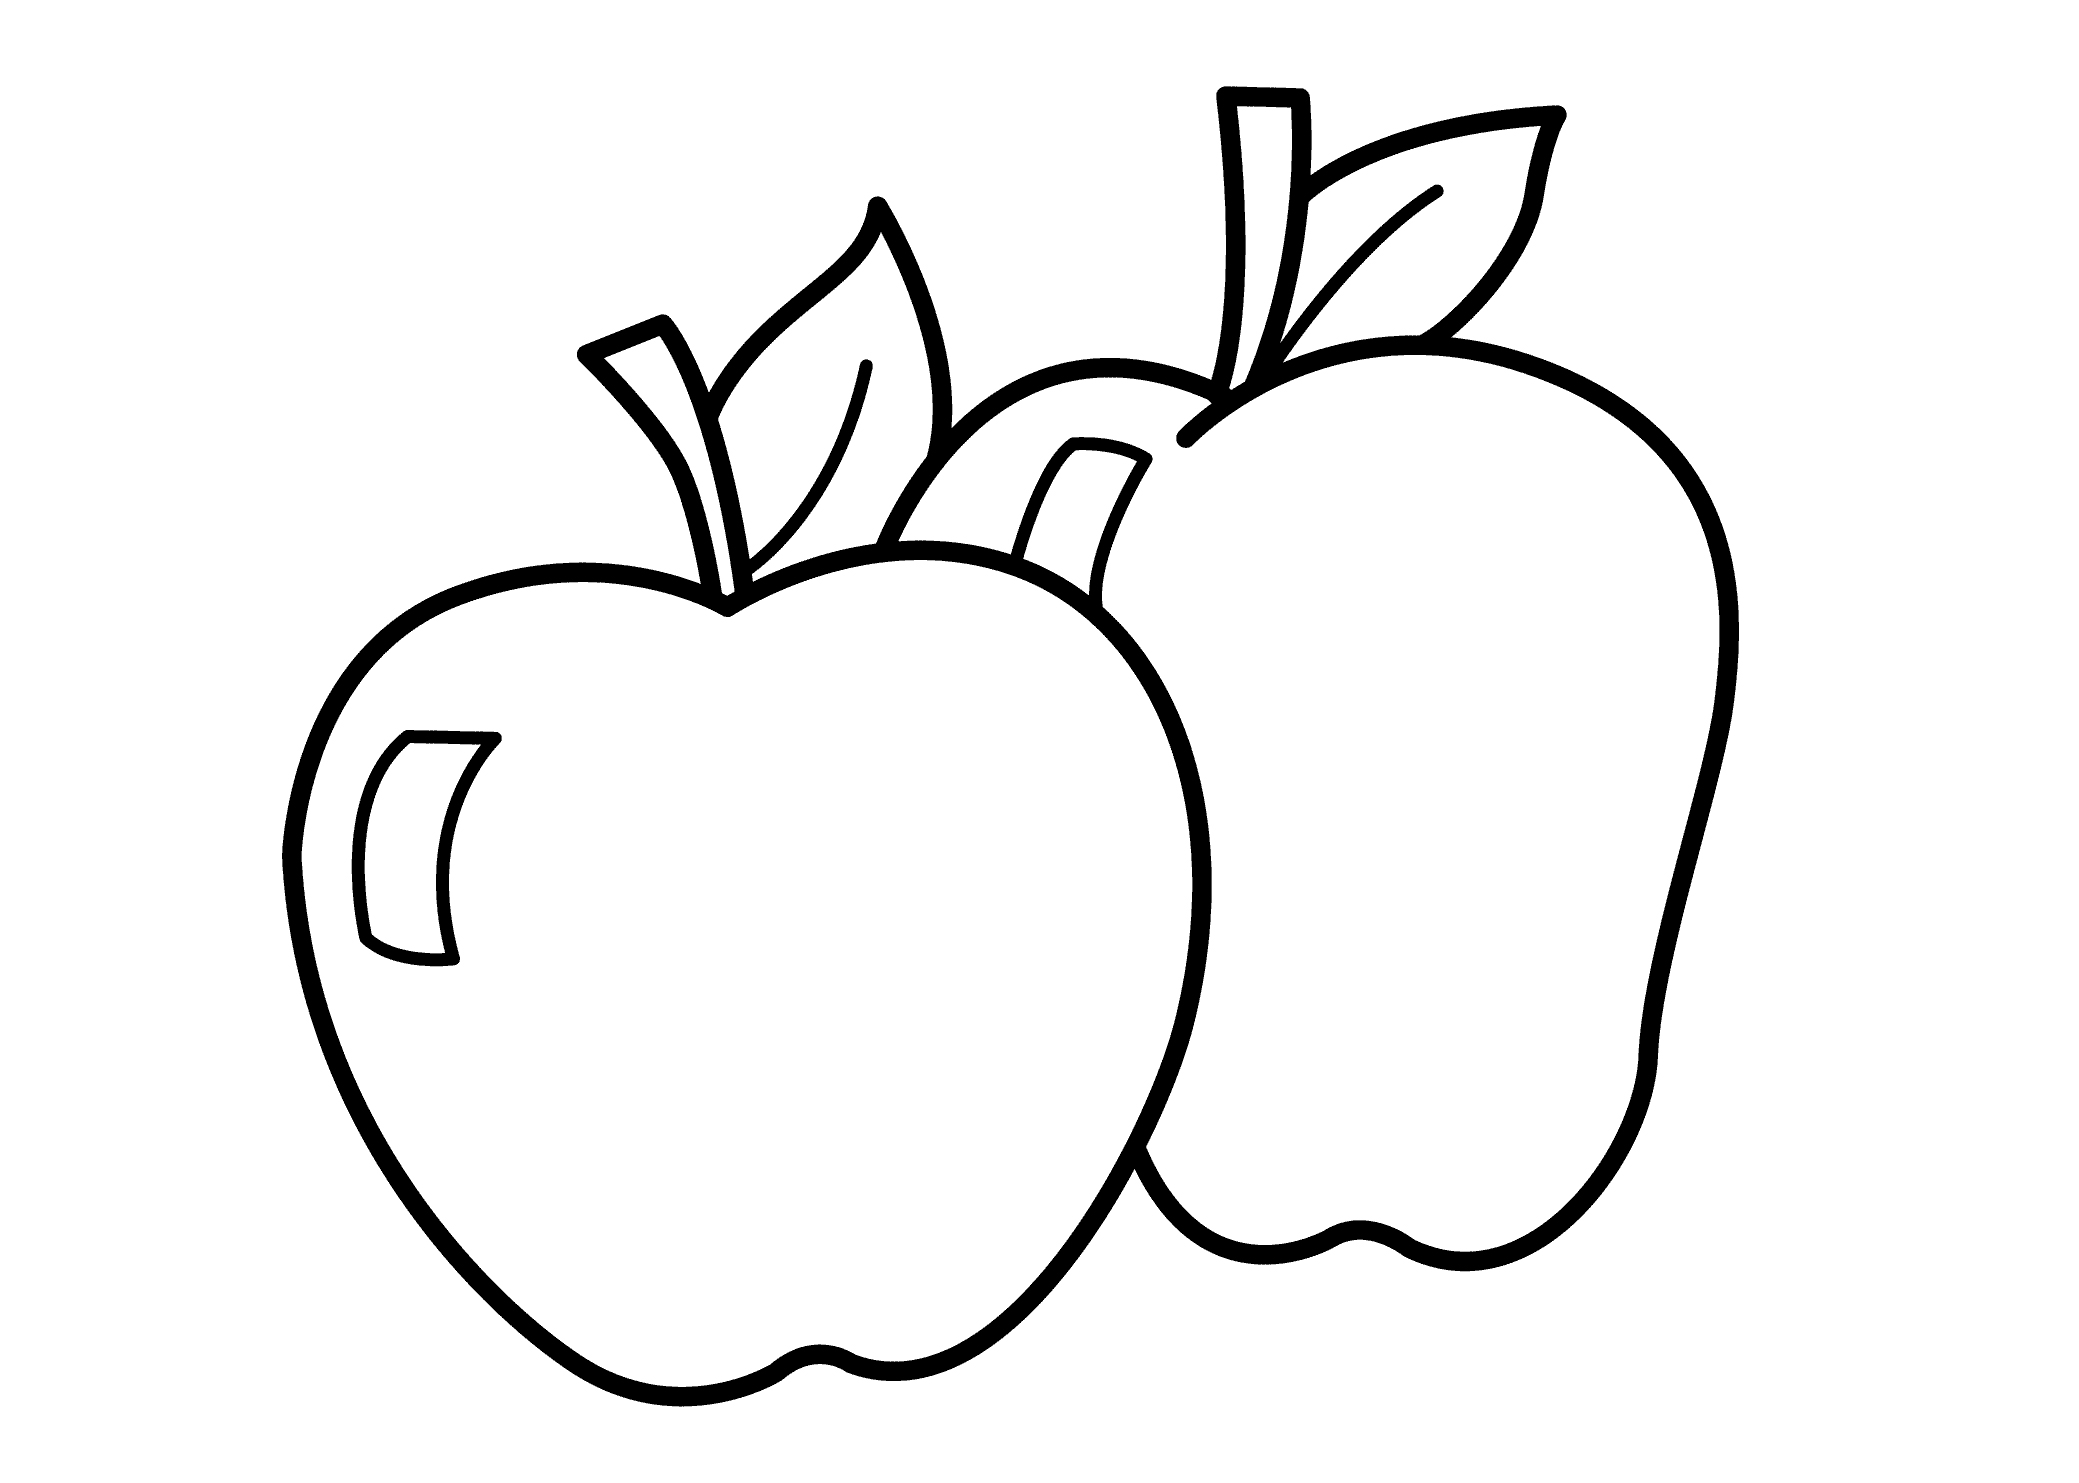 coloring picture of an apple free printable apple coloring pages for kids picture of coloring an apple